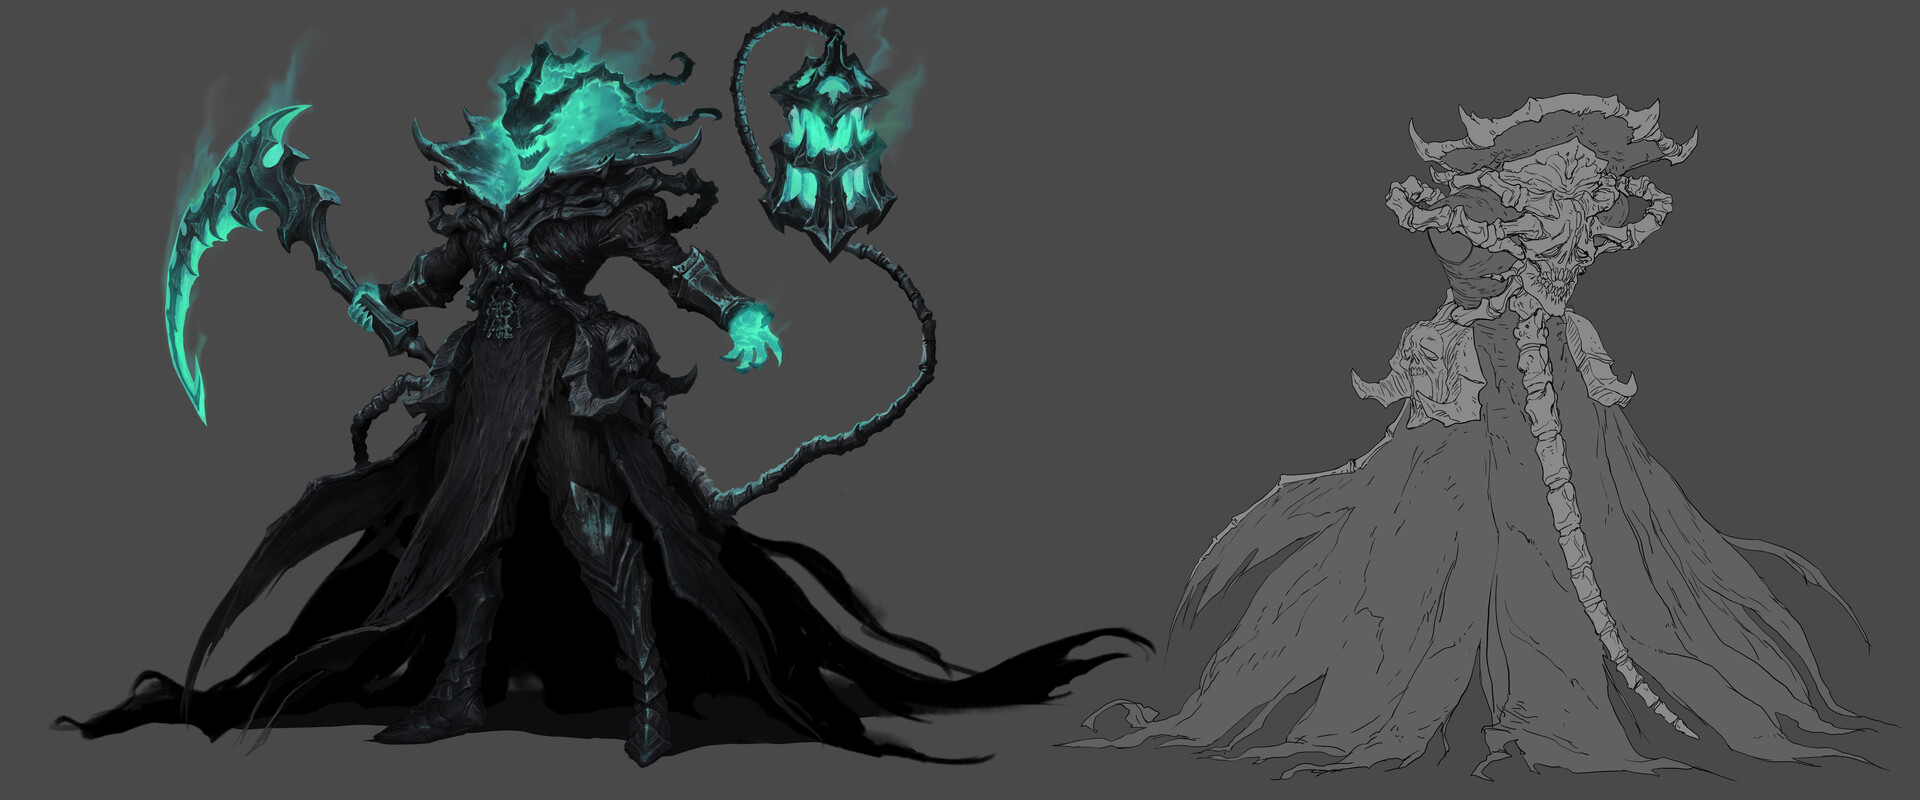 Thresh concept art from The Climb.